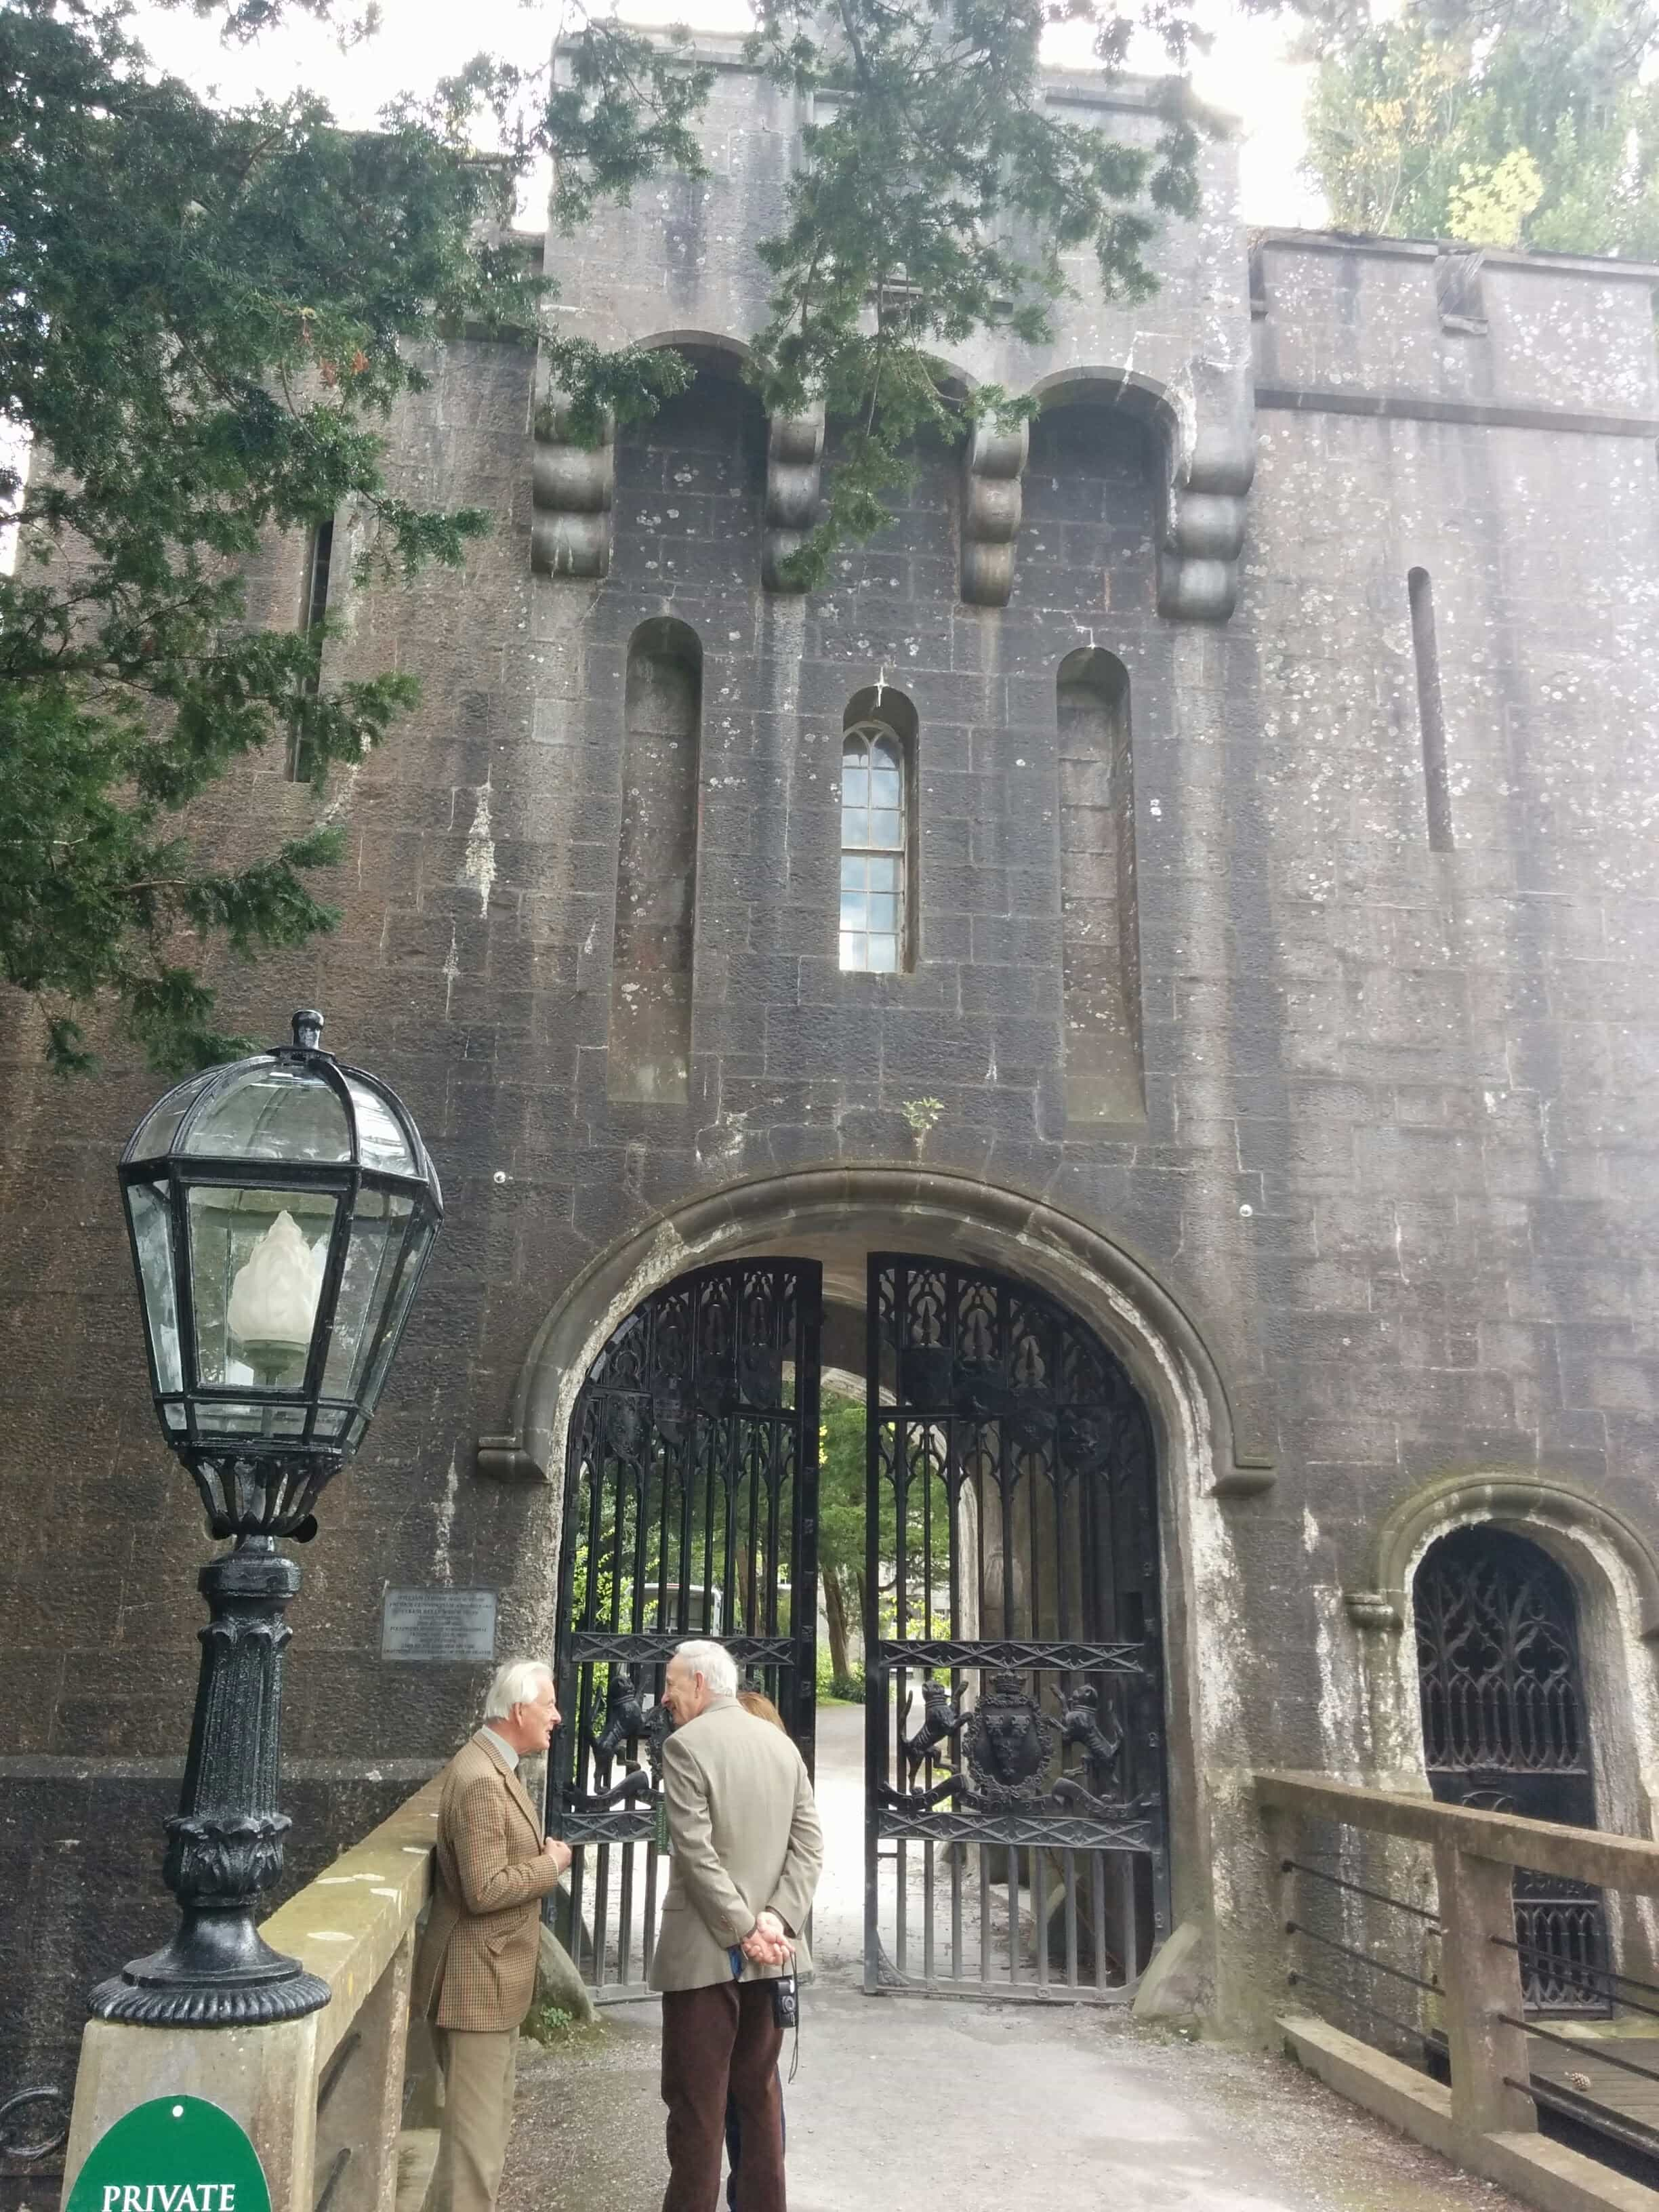 Visiting the distinguished Birr Castle in Ireland